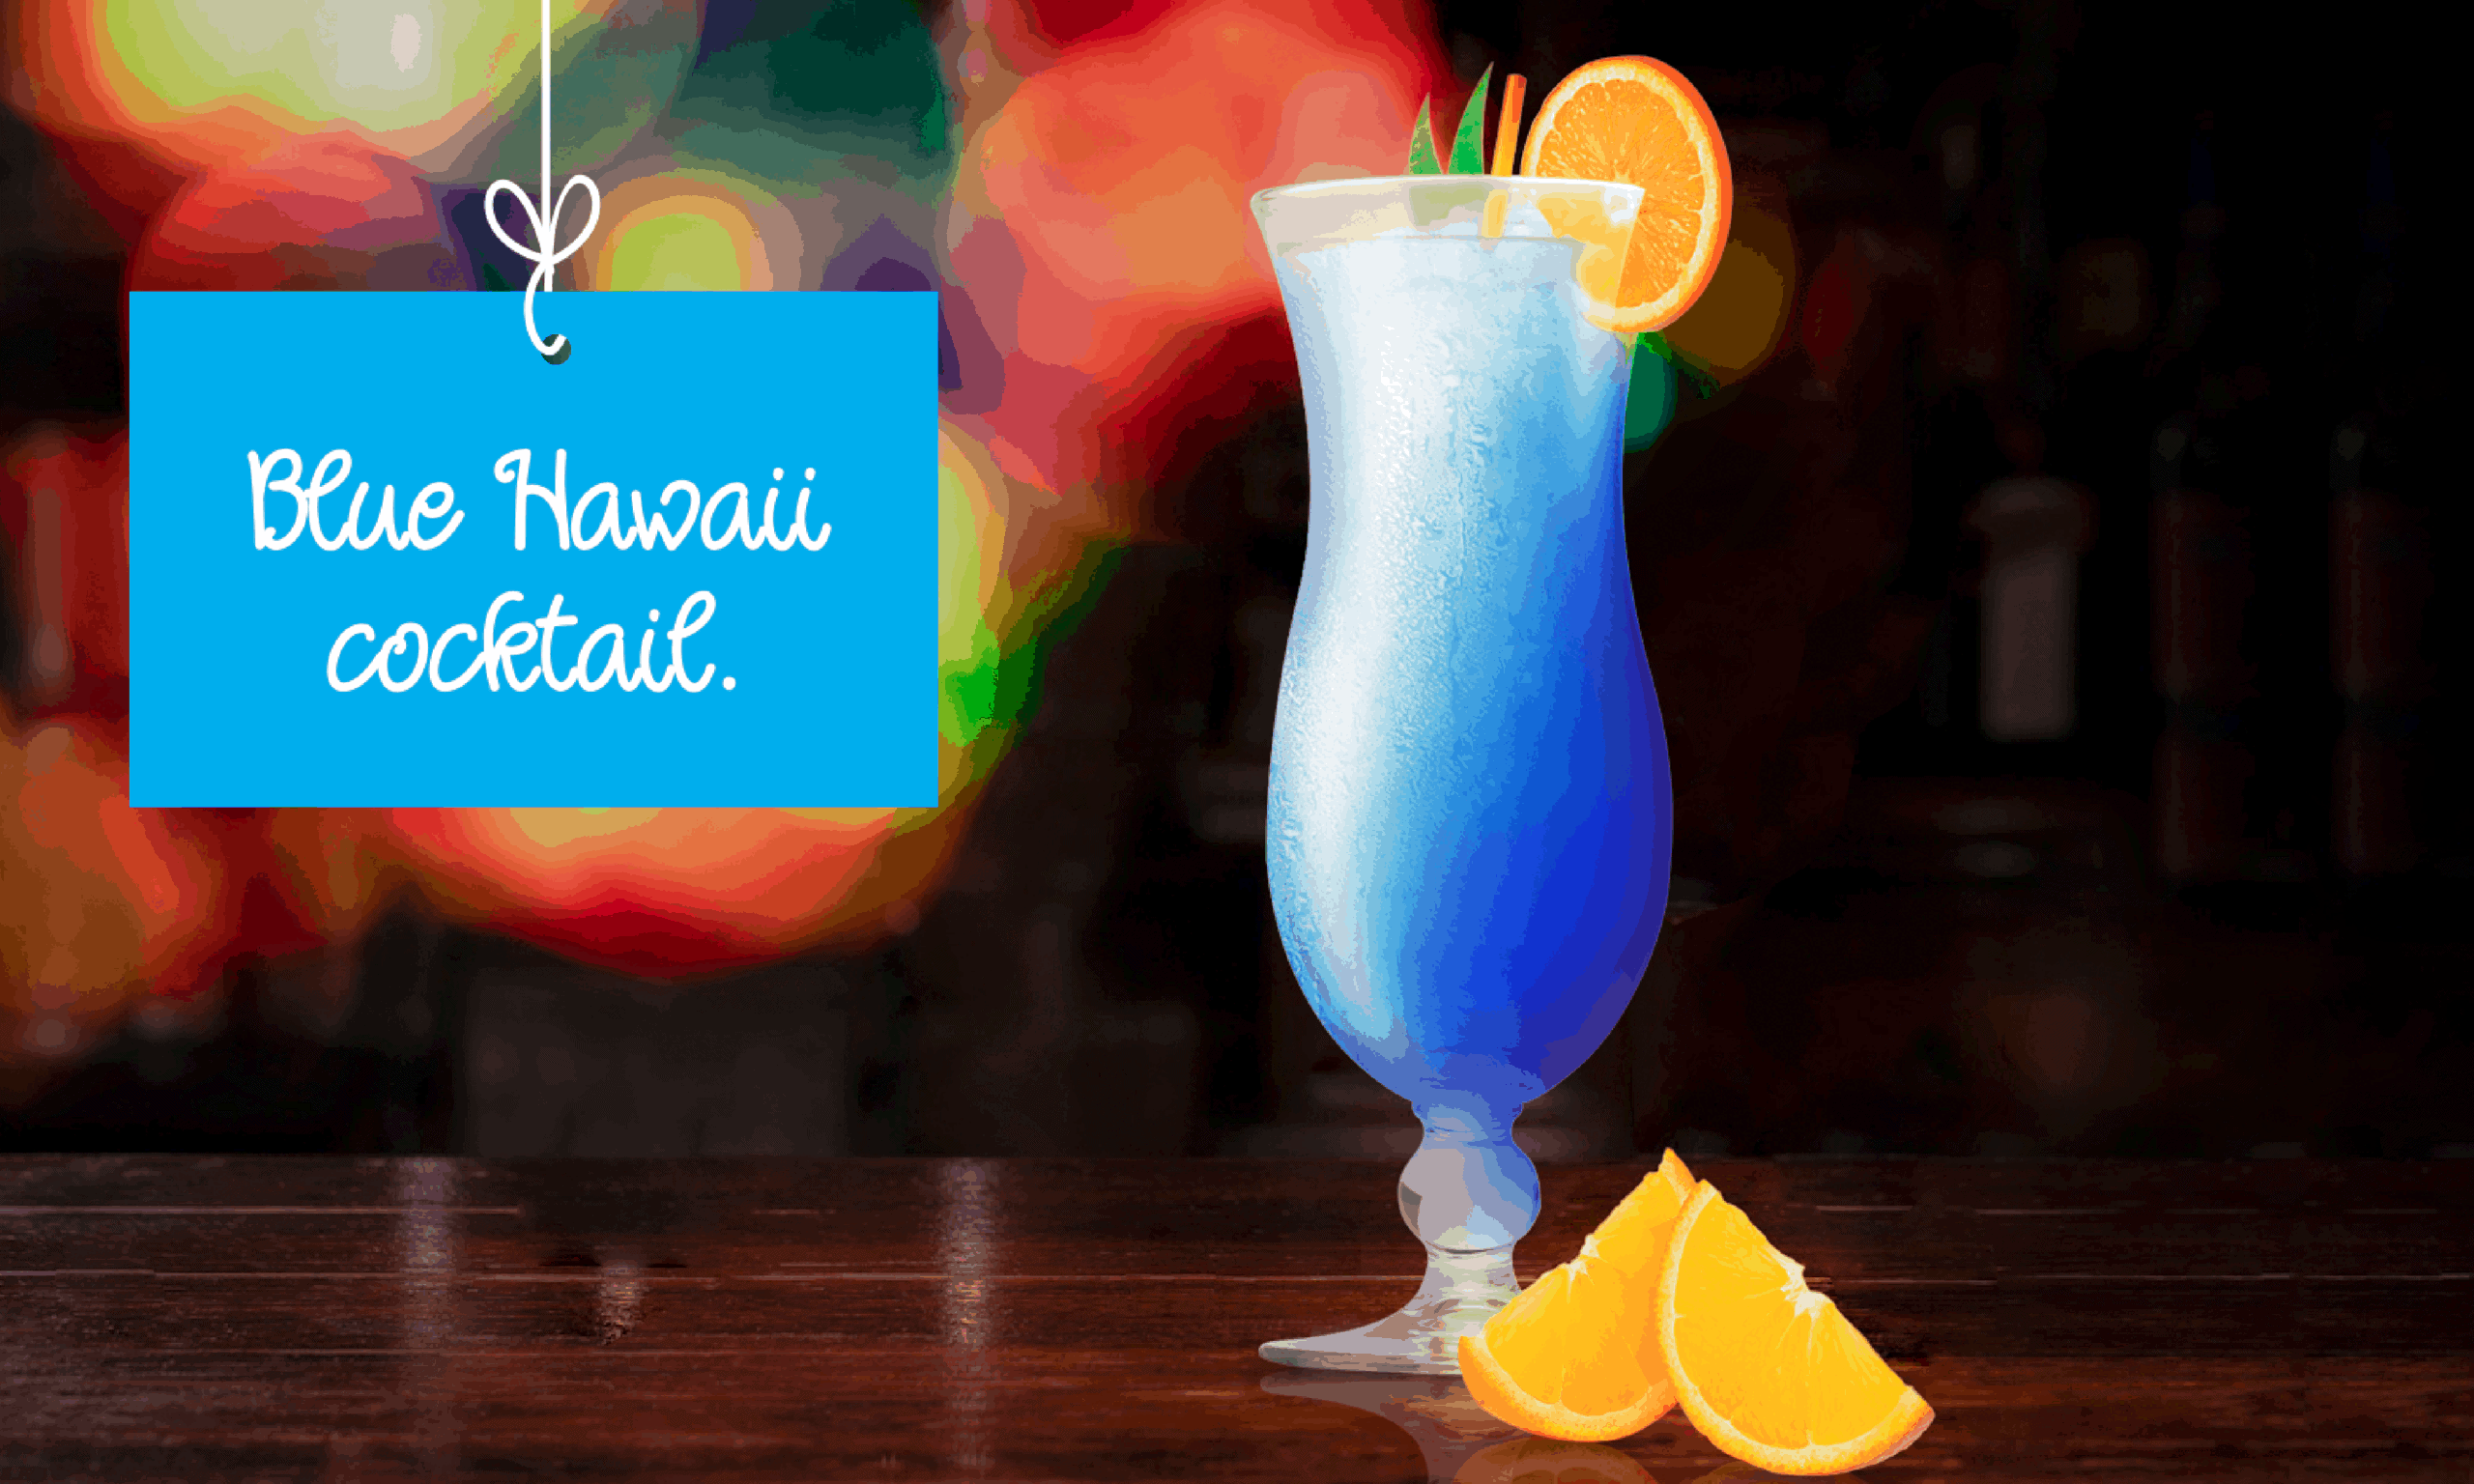 Blue Hawaii Cocktail garnished with orange wedge.